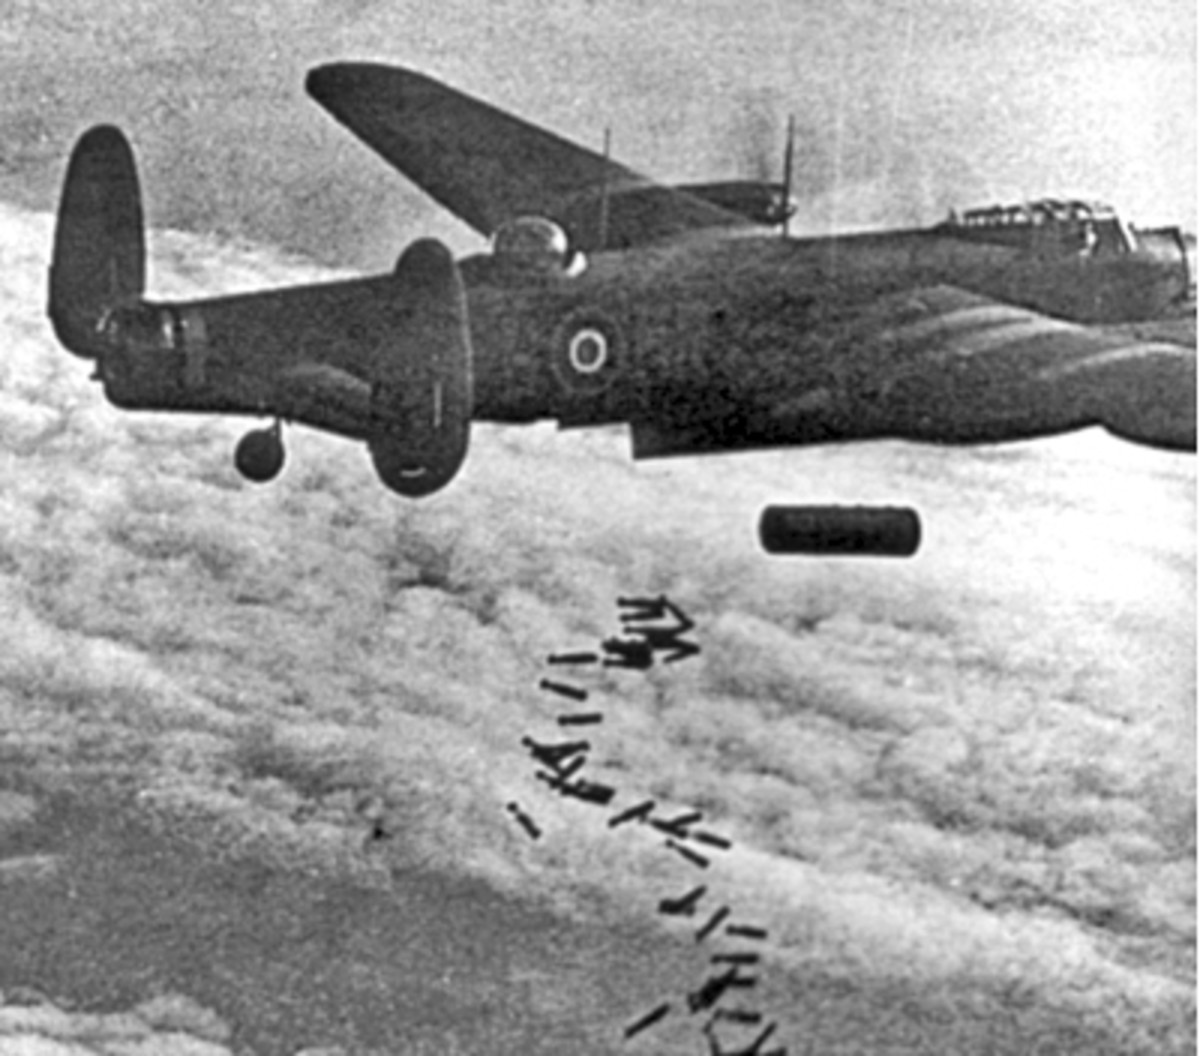 A Lancaster bomber drops a combination of incendiary and high-explosive weapons.